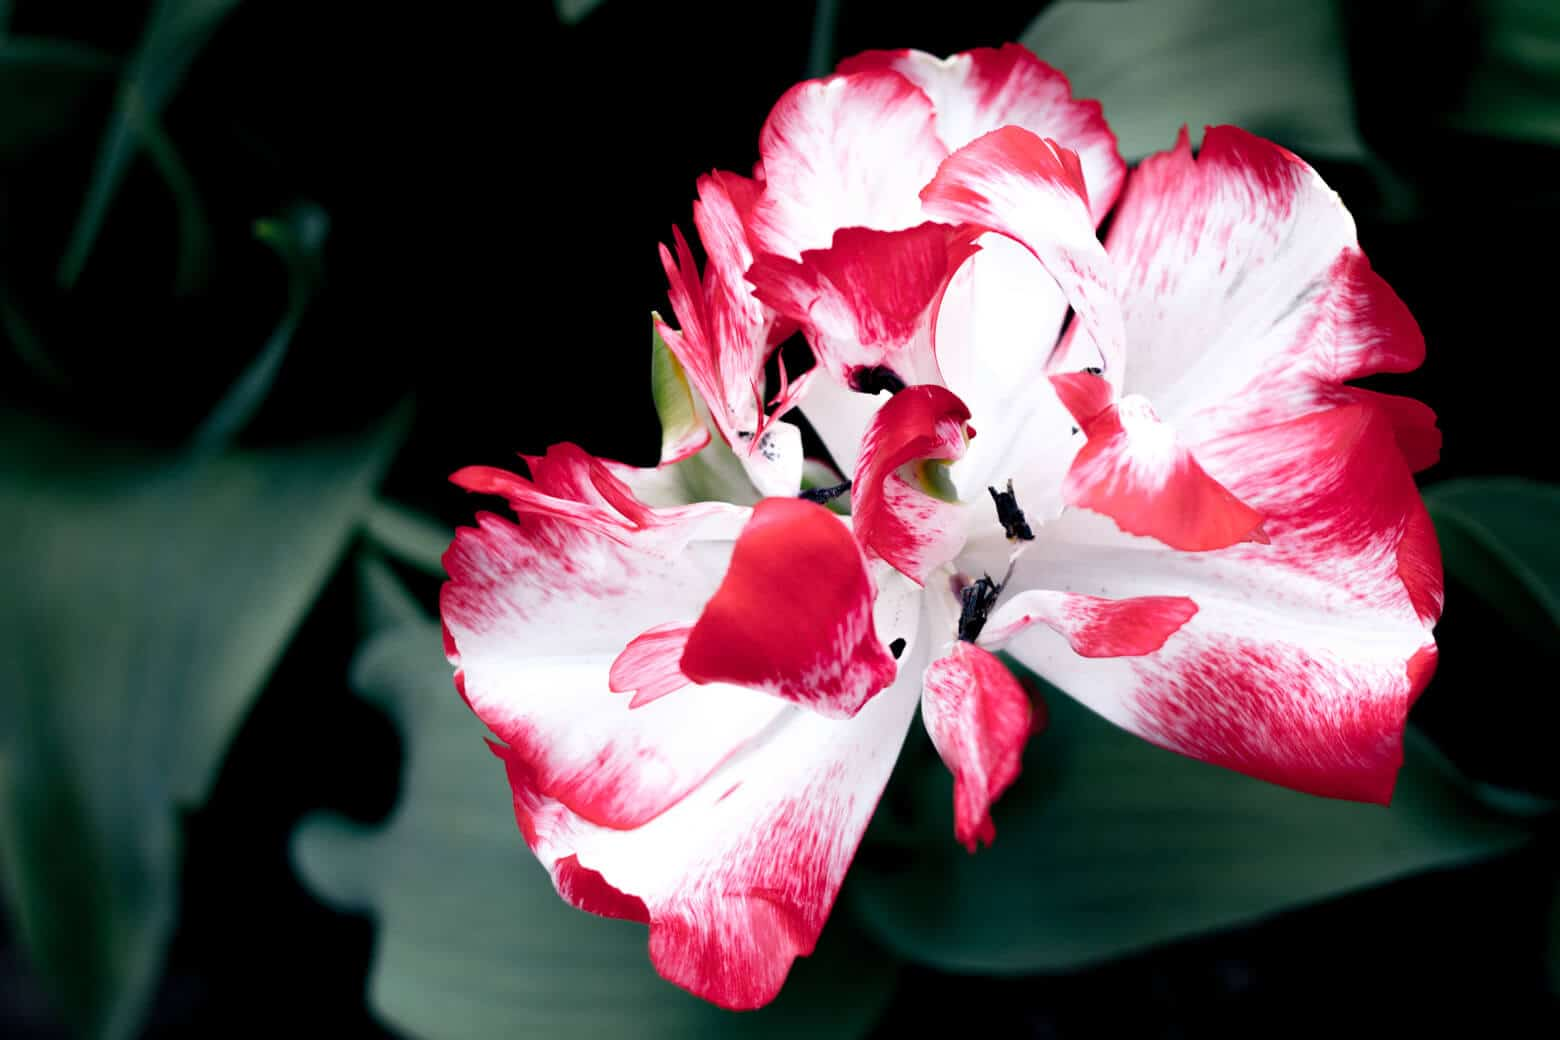 Red & White Flower in Holland